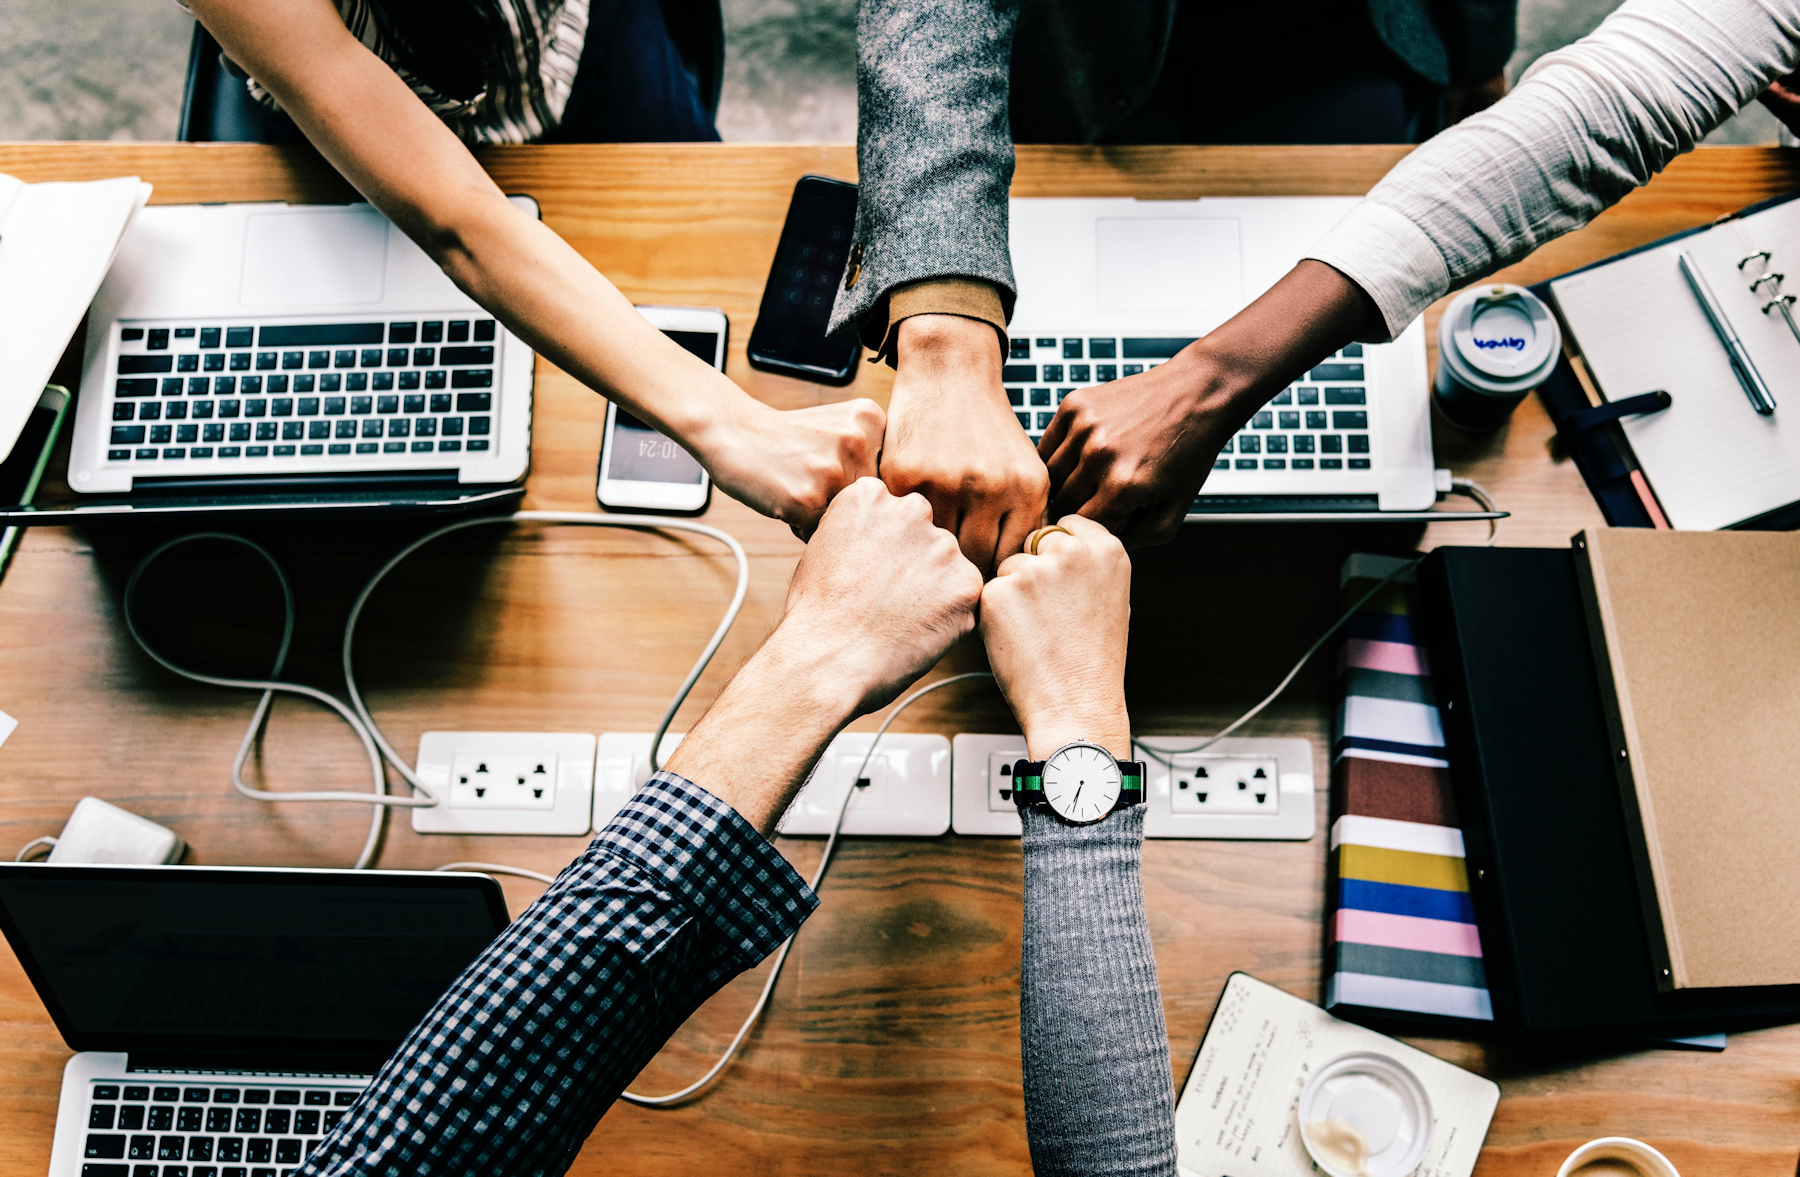 5 of the Best Collaboration Tools for Startups